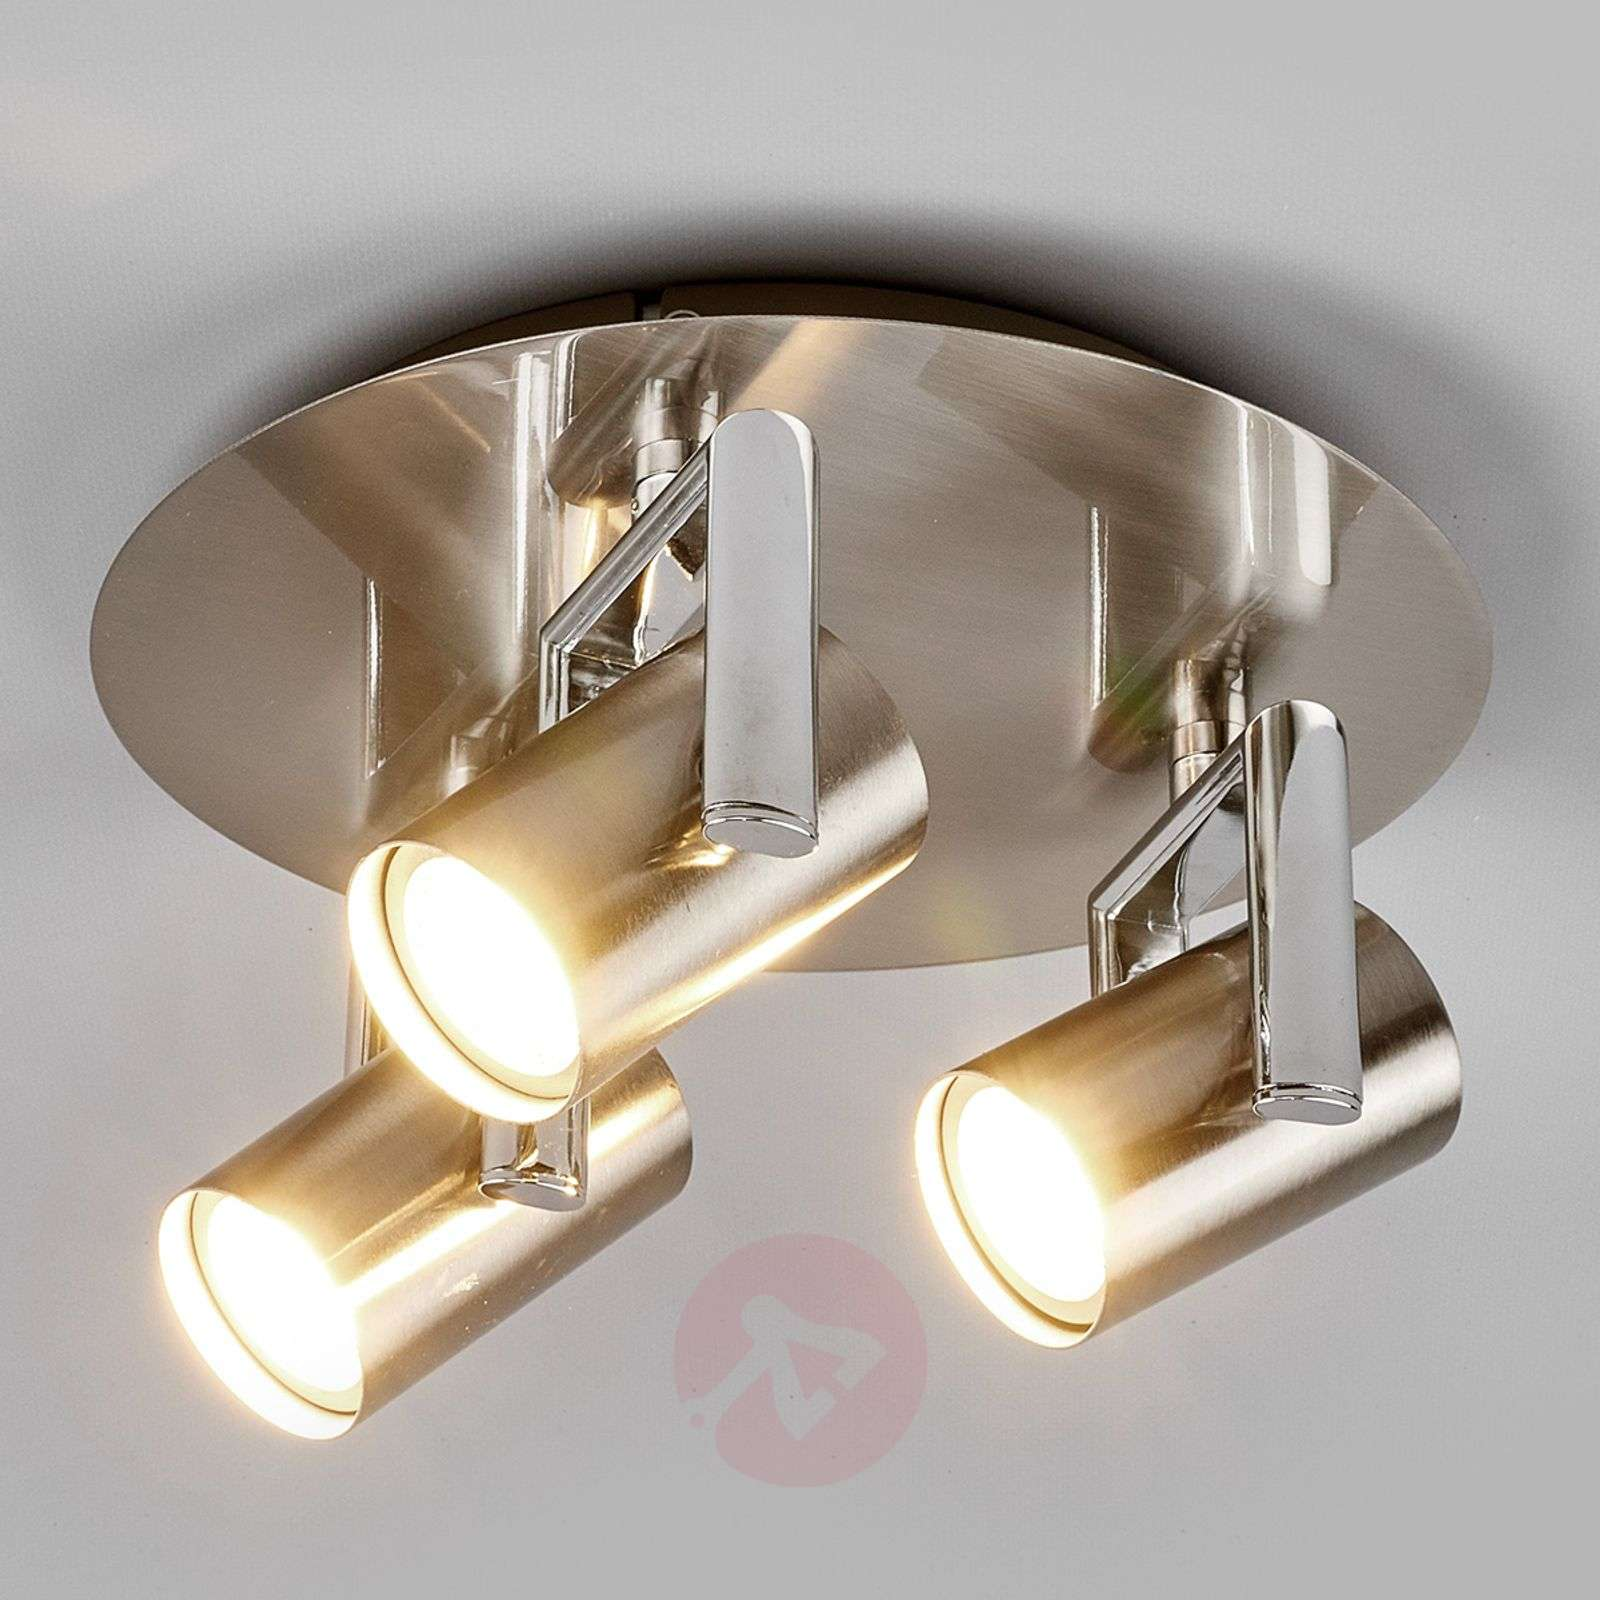 3 Bulb Ceiling Light: Round Luciana LED Ceiling Spotlight, 3-bulb